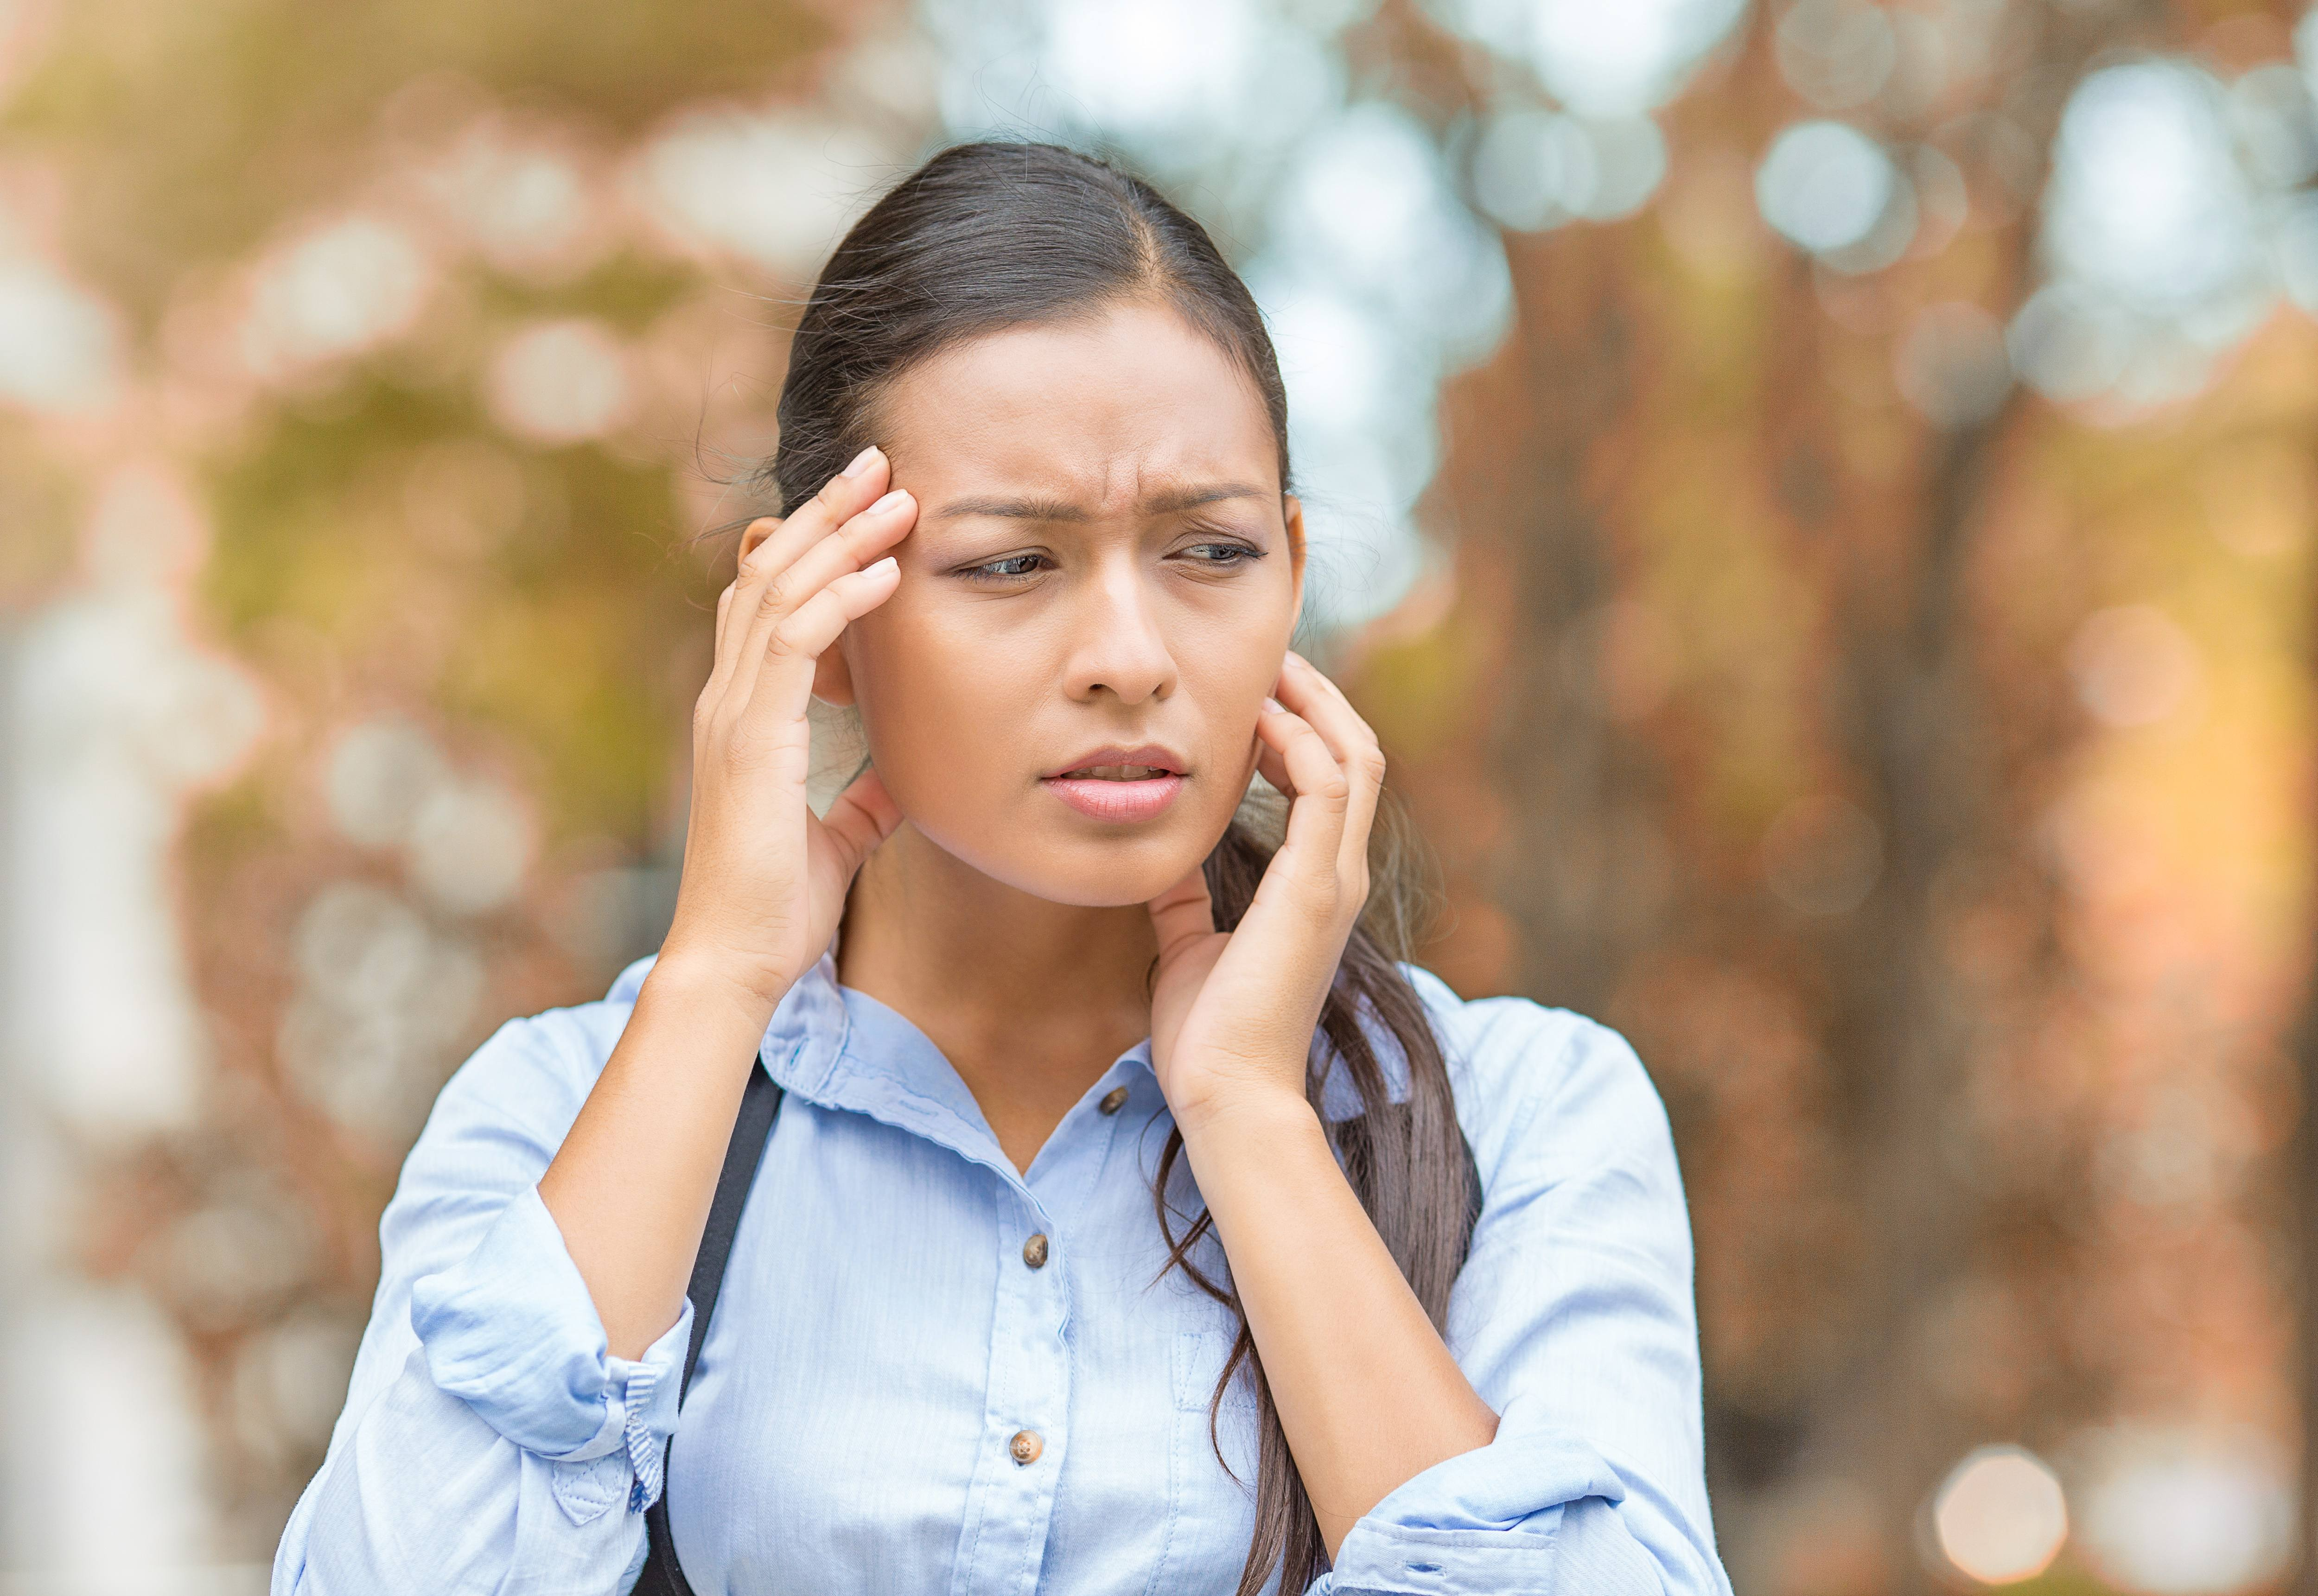 Close-up portrait of woman with hands on head having headache outside with a background of autumn trees